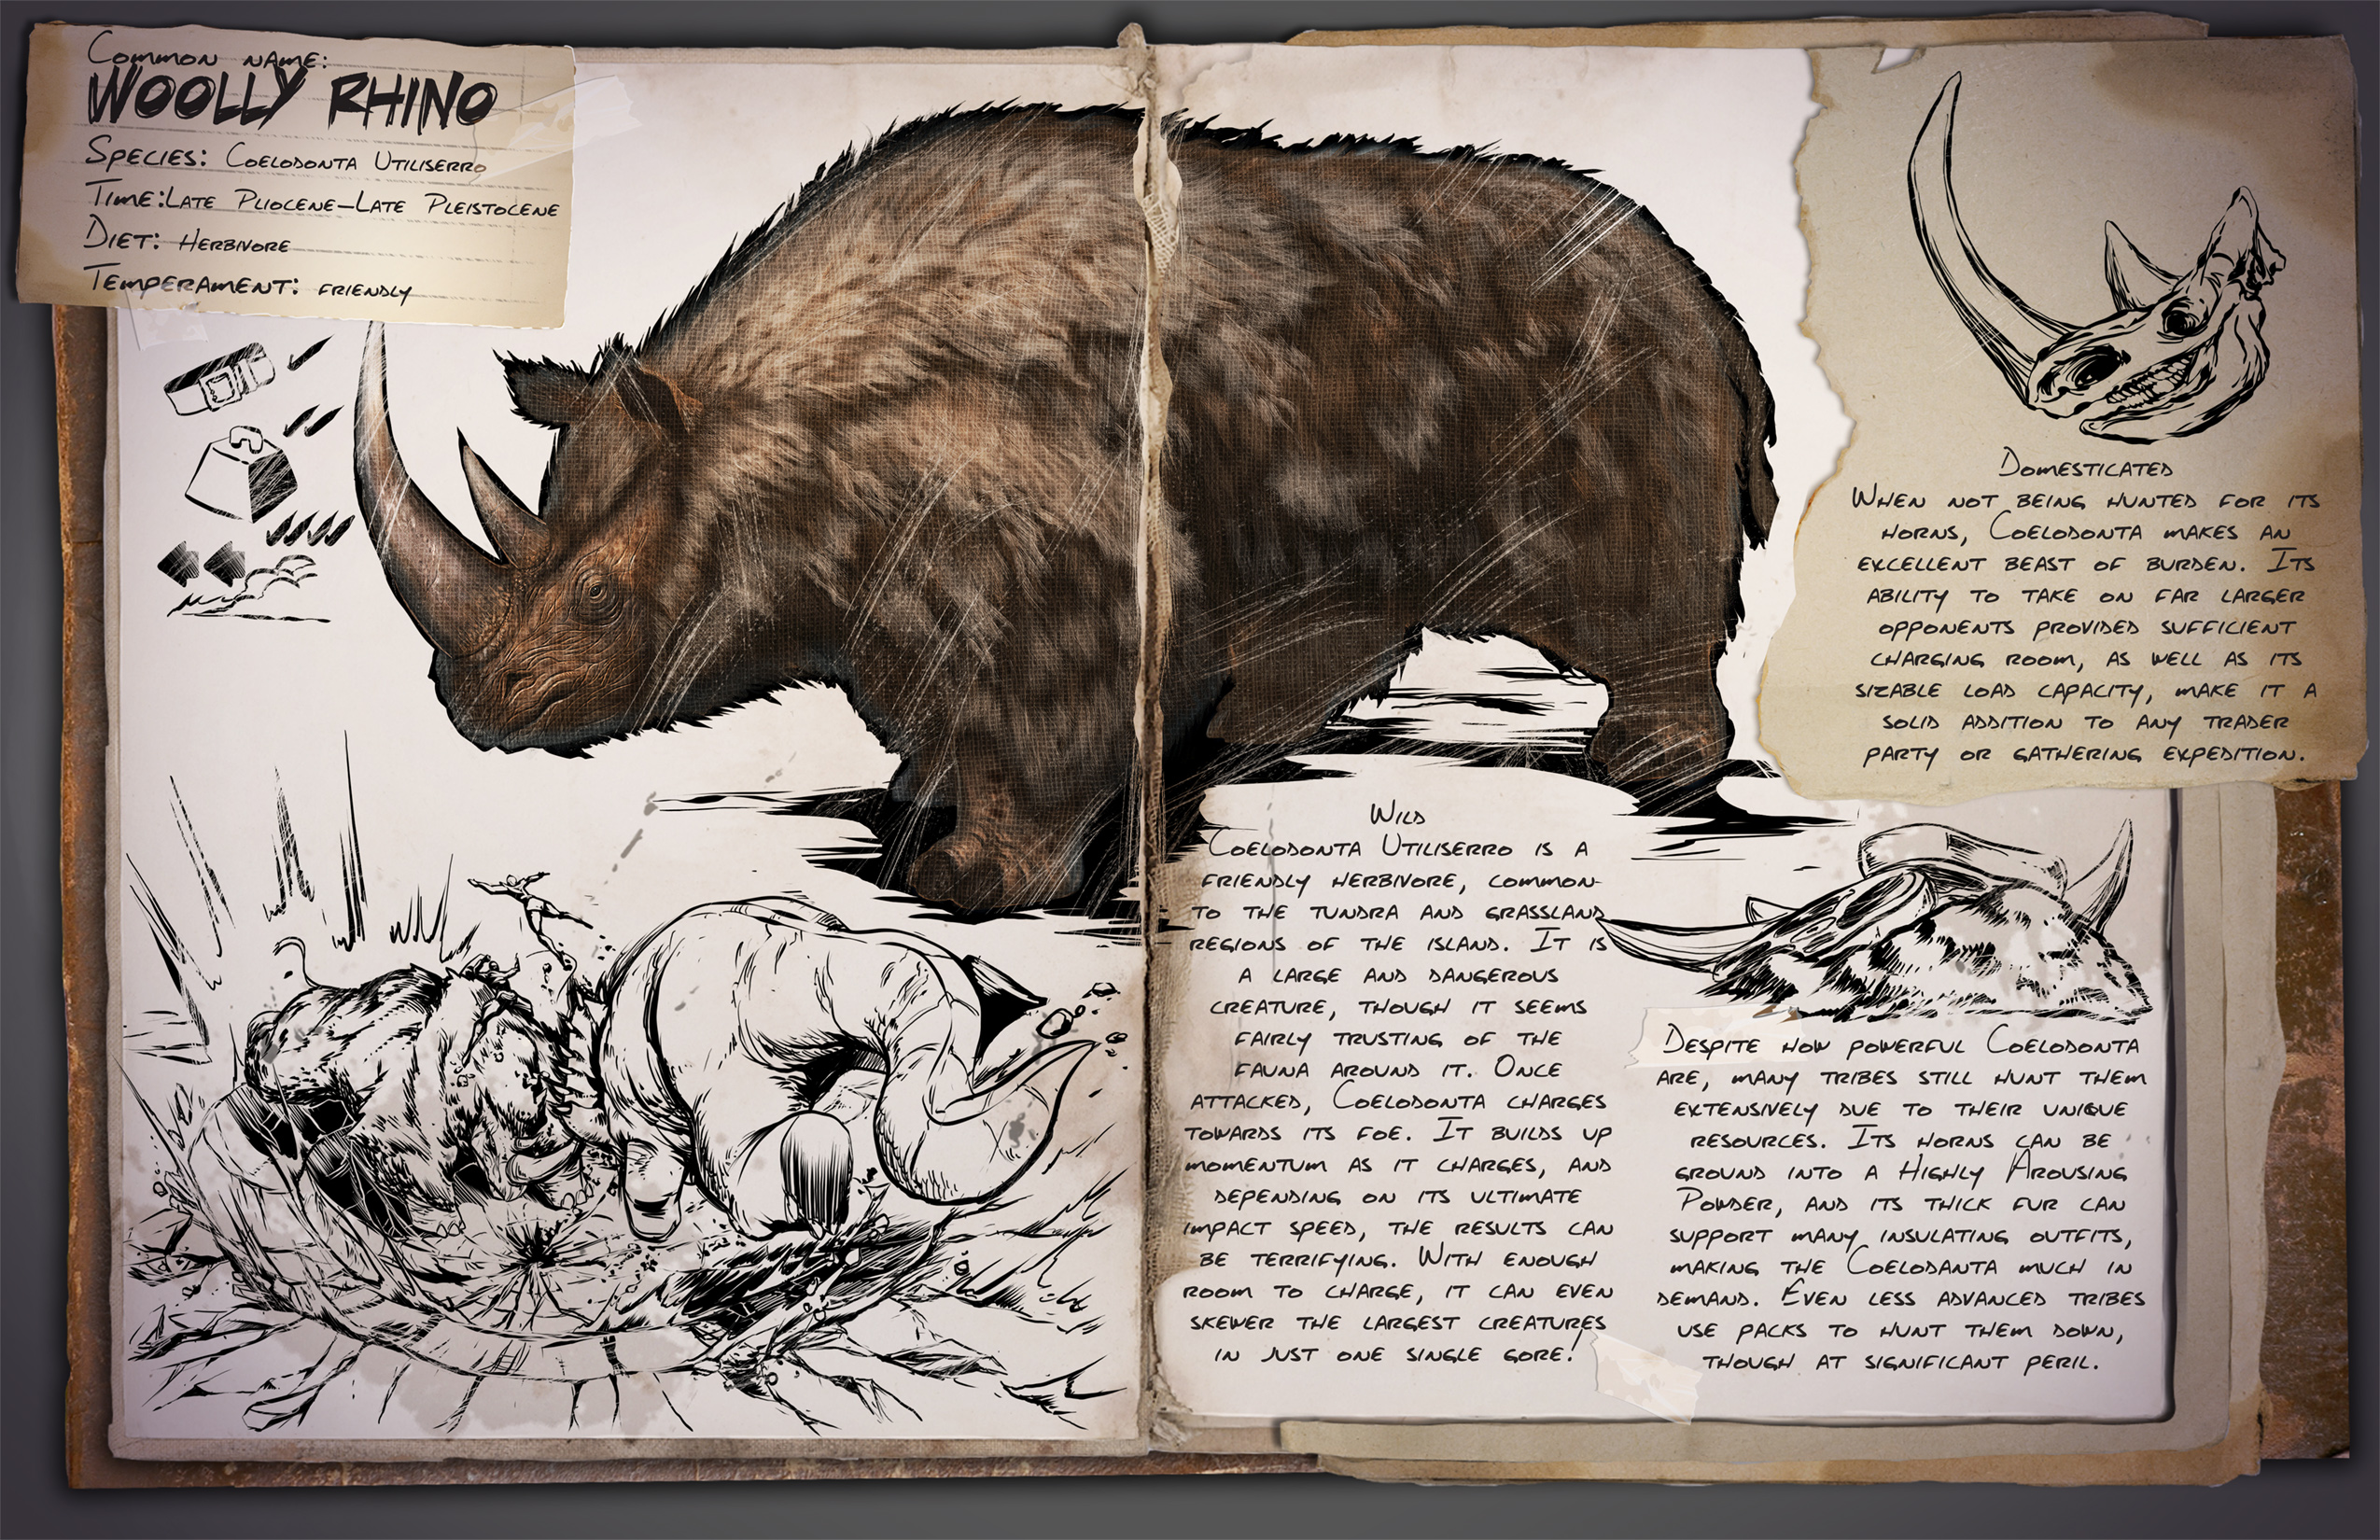 Woolly Rhino Ark Survival Evolved Wiki Fandom It can be tamed and ridden, however, taming it is quite a difficult task. woolly rhino ark survival evolved